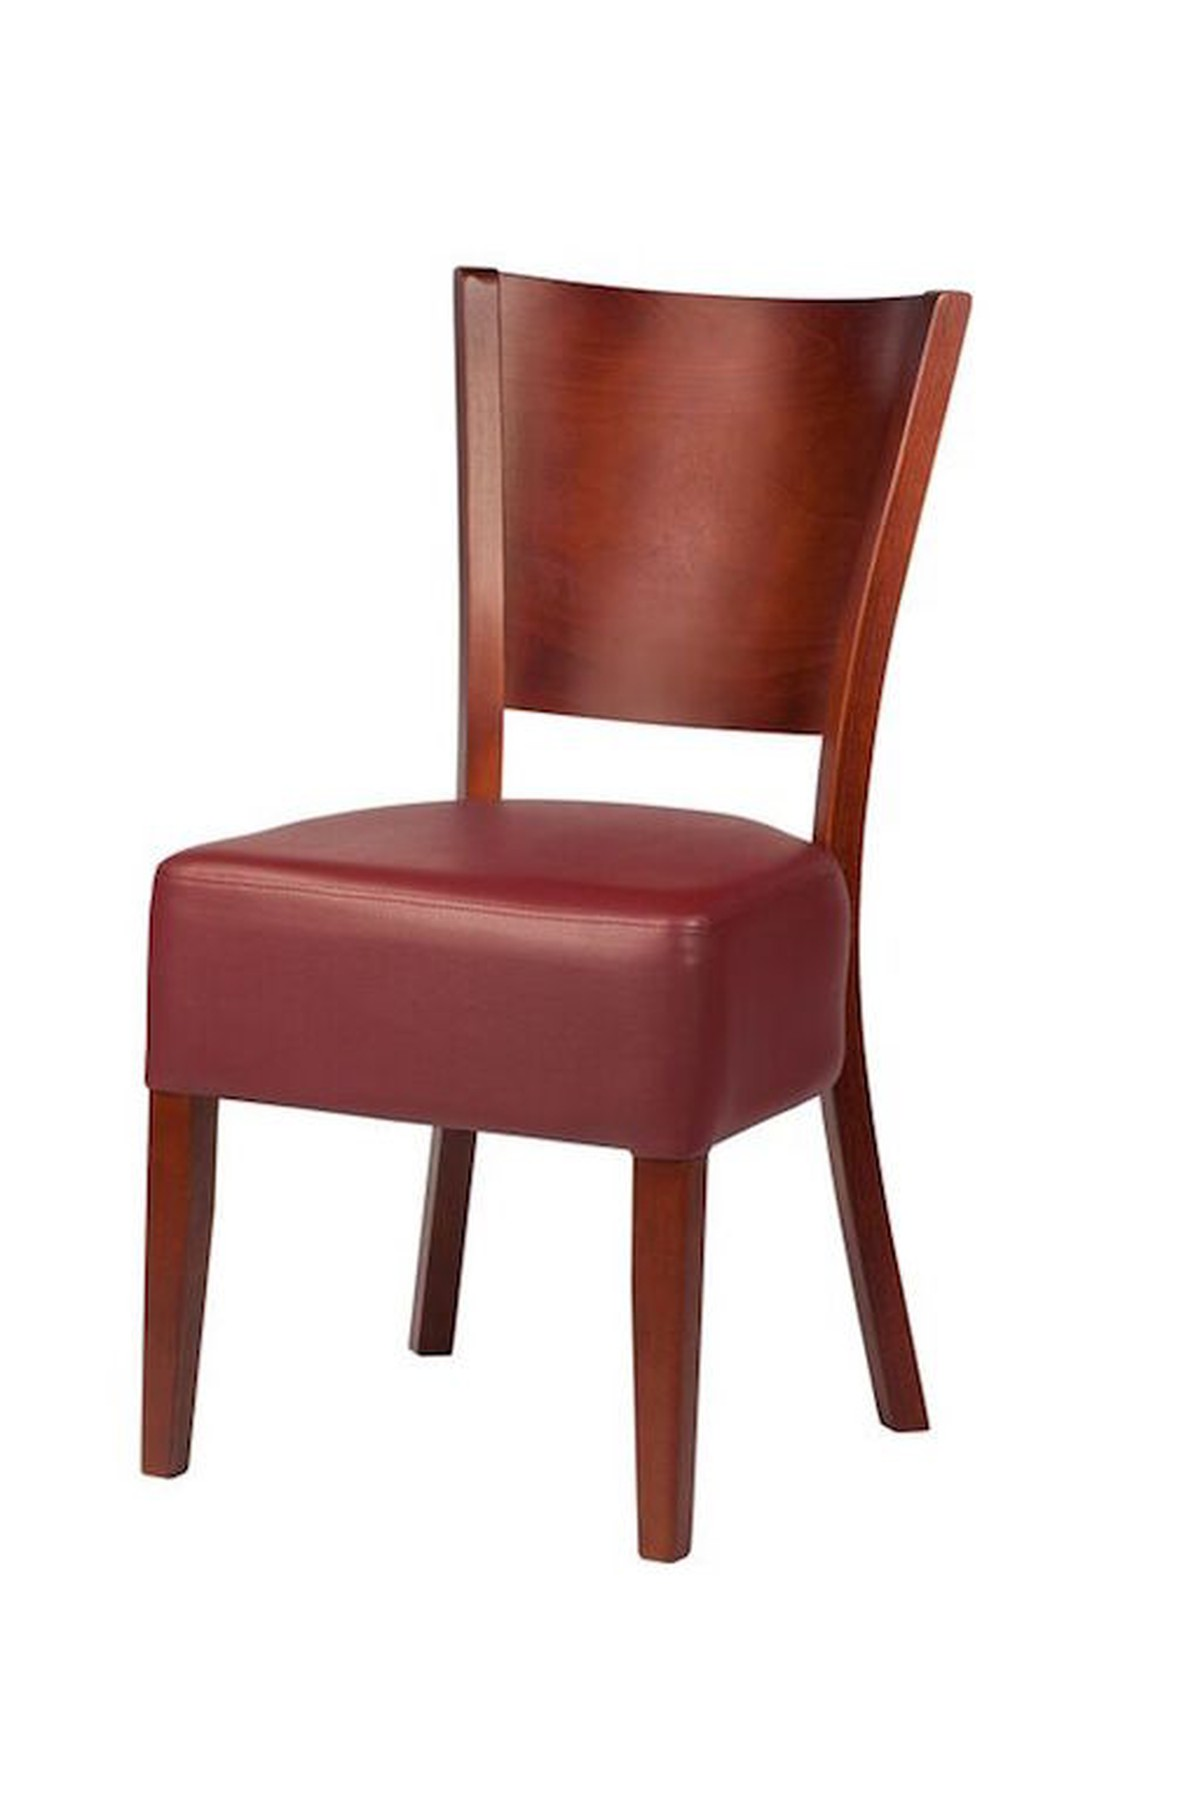 Secondhand hotel furniture dining chairs 140x designer for Chair design leather